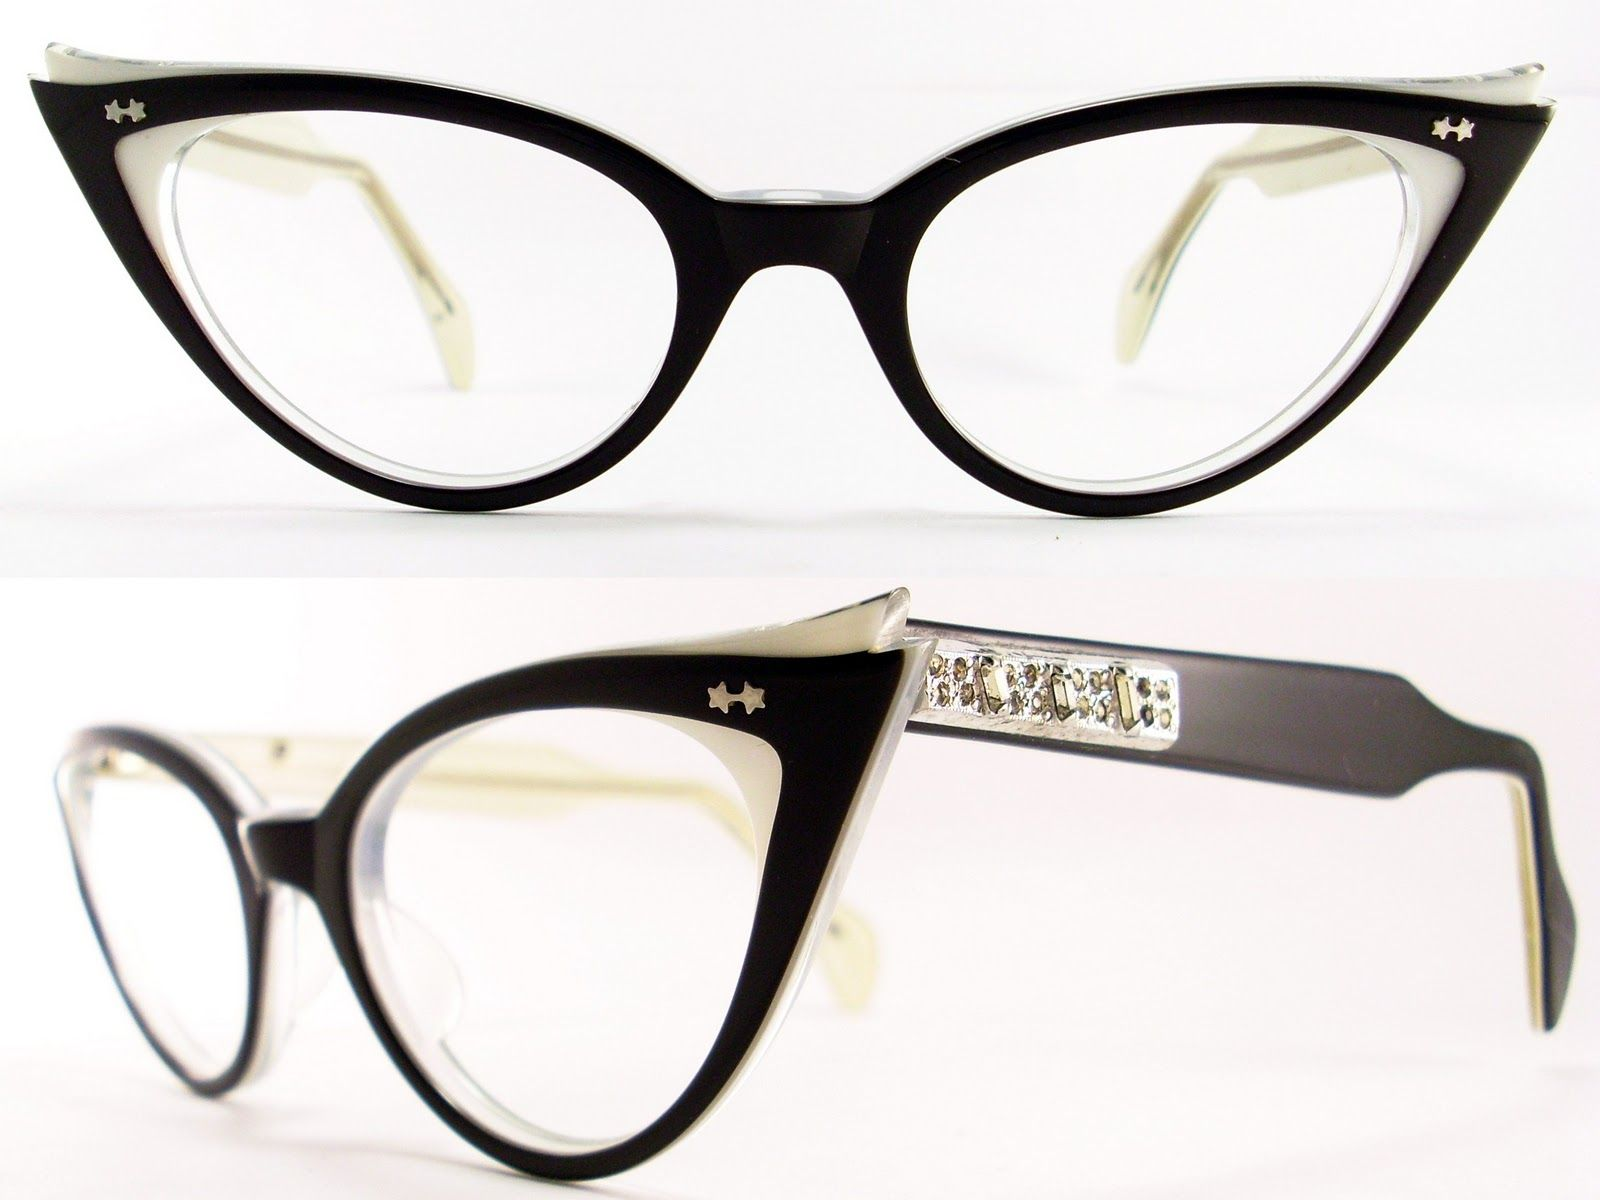 vintage eyeglass images vintage eyeglasses frames eyewear sunglasses 50s vintage 50s cat eye